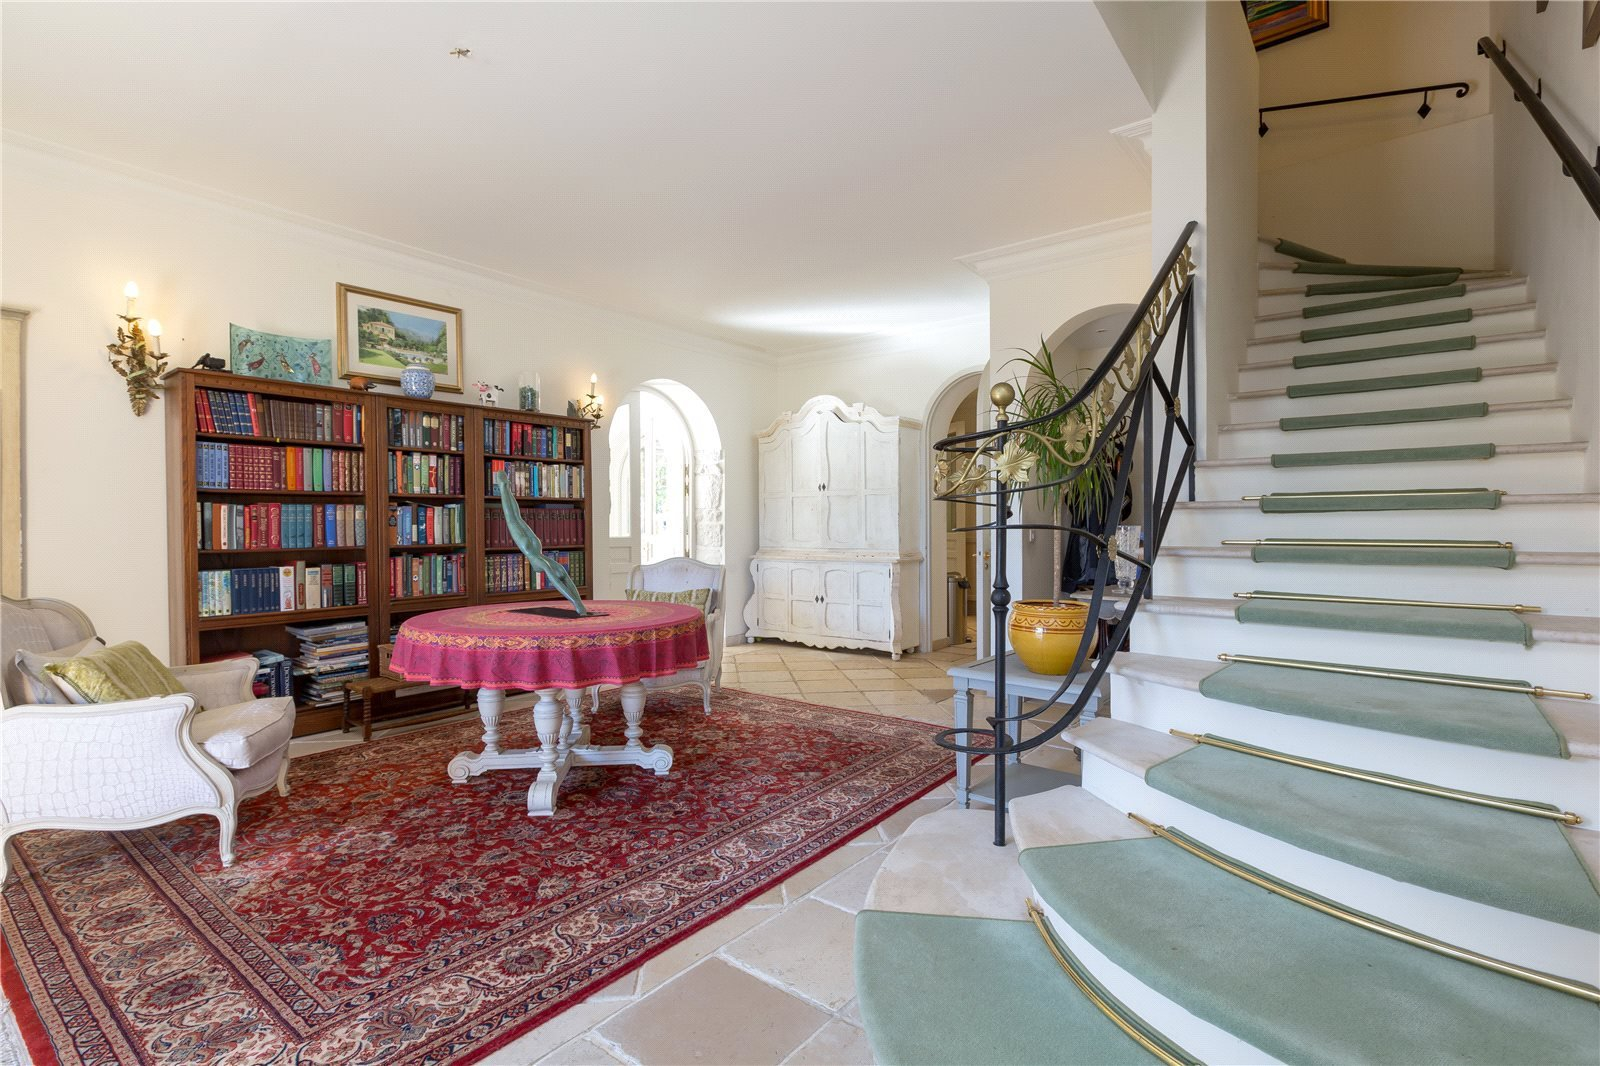 Buying Villa Saint-Jean-Cap-Ferrat Villa with pool and guest cottages and a total of 9 bedrooms, ideally situated for local amenities and the centre of St Jean Cap Ferrat.